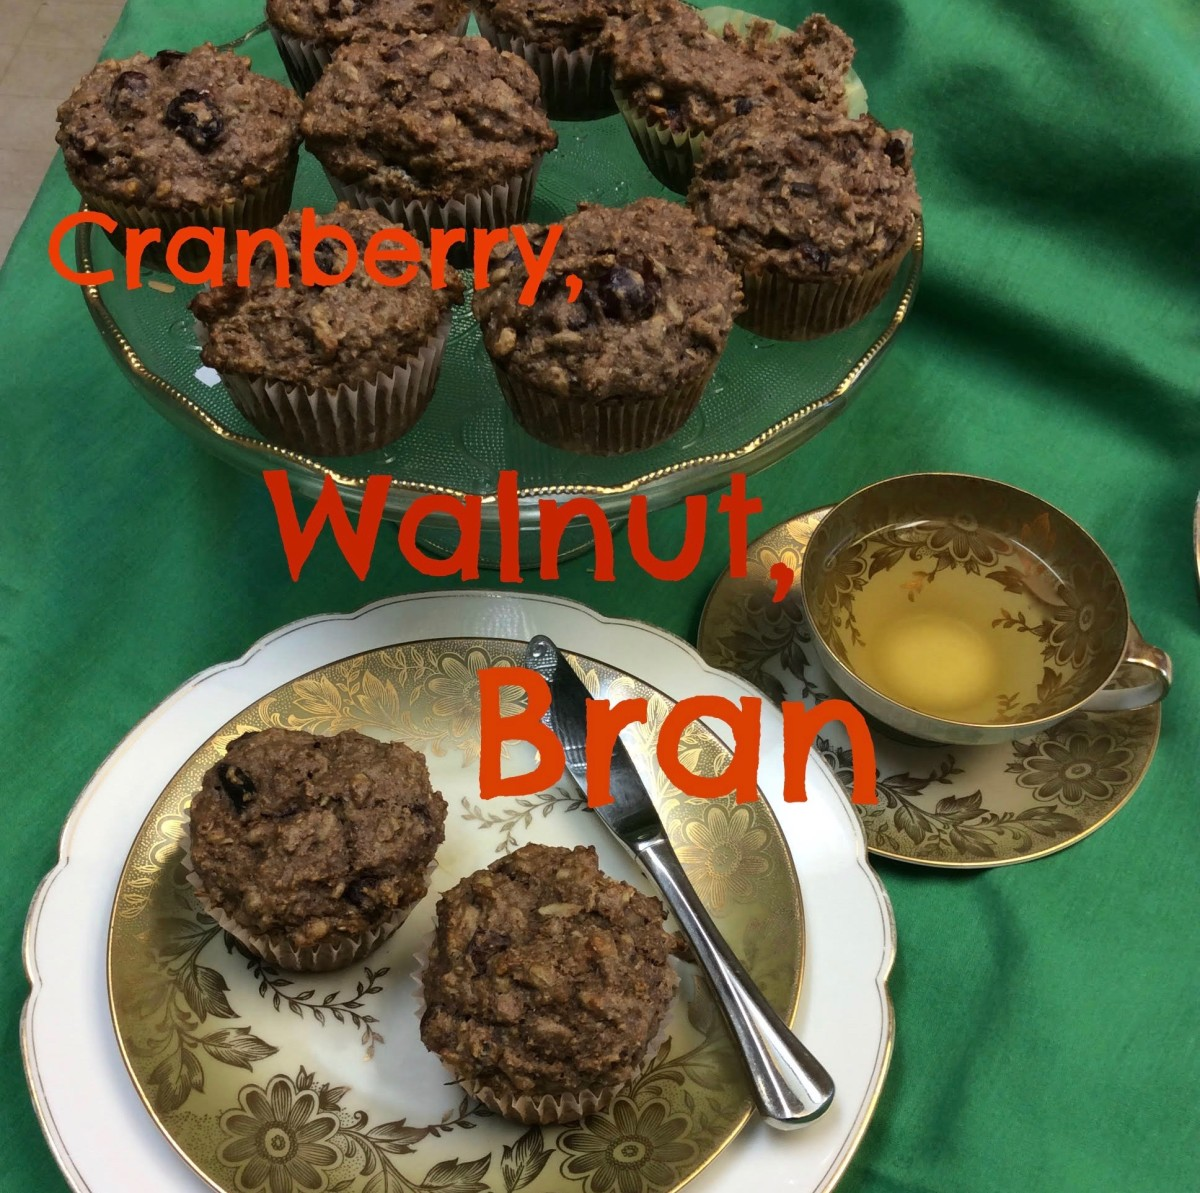 Adapt a bran muffin recipe to include dried fruits, nuts, seeds, wheat germ and other super ingredients.